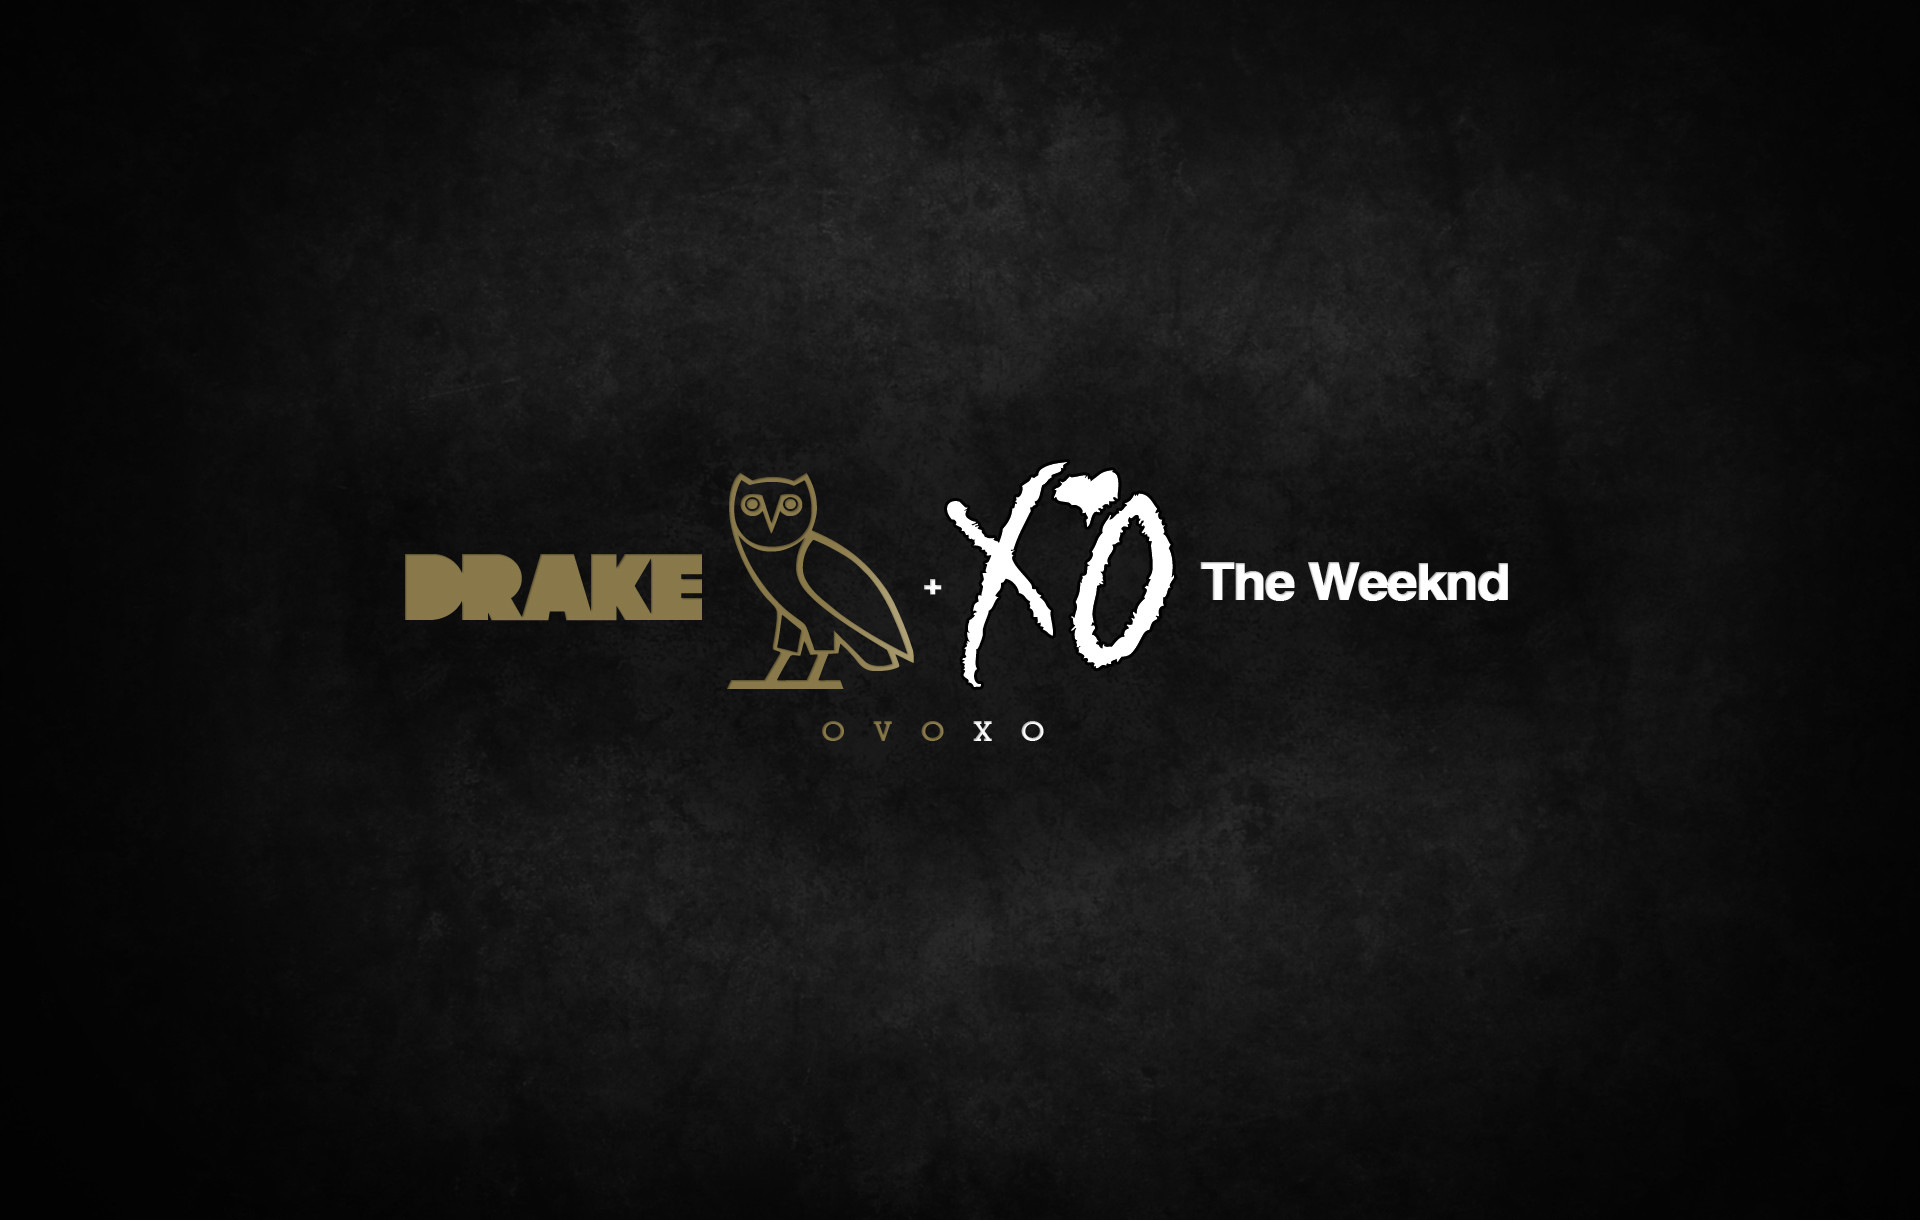 The Weeknd and Drake XO Rap Wallpapers 1920x1220